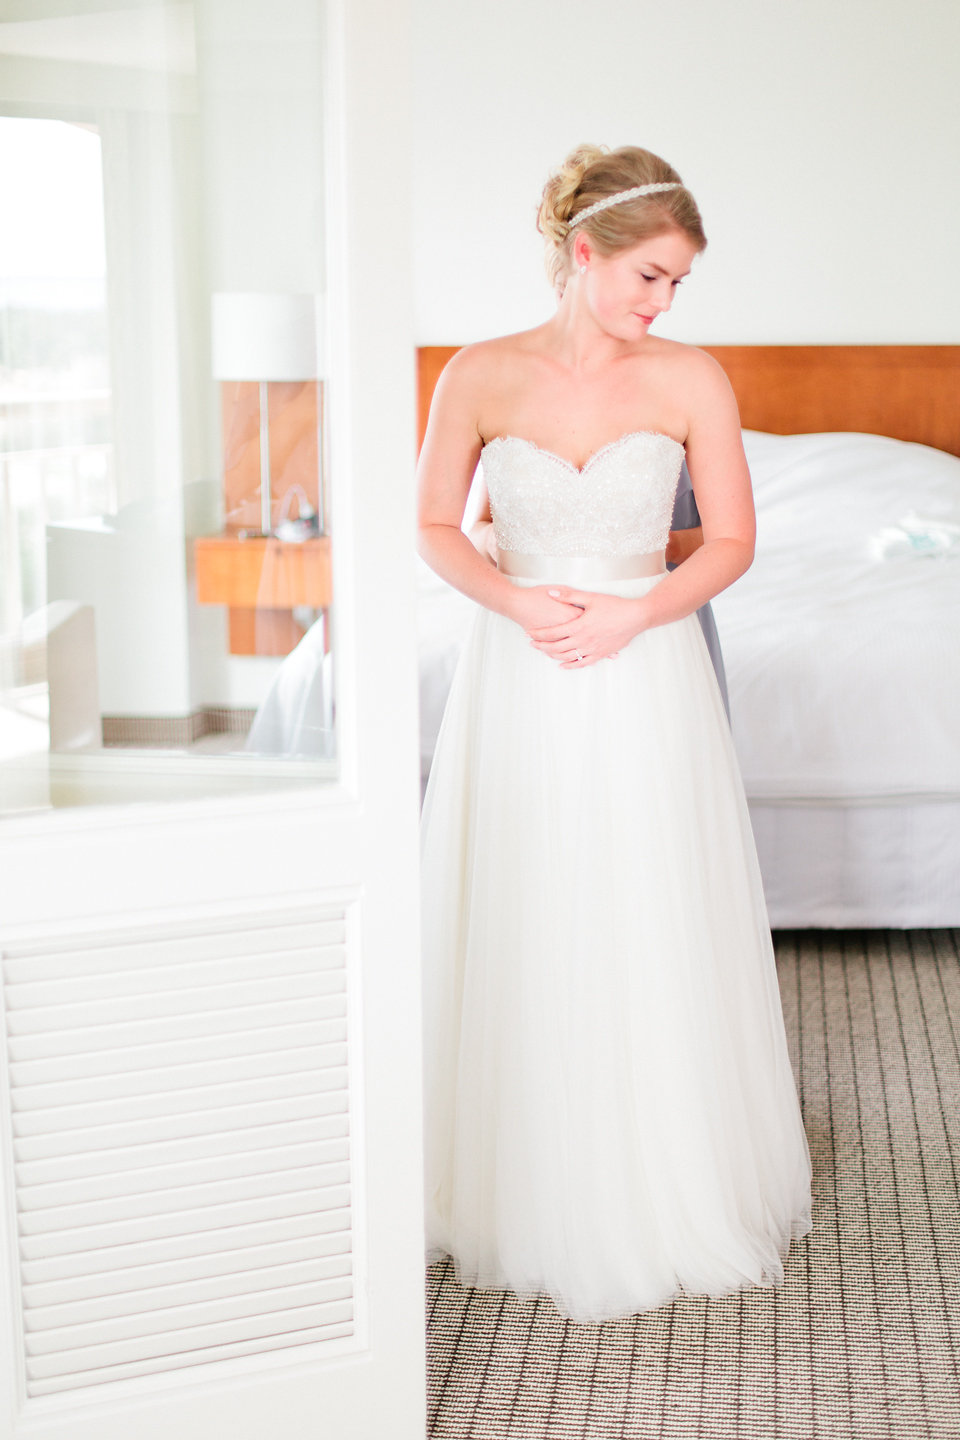 The bride's gown combined soft tulle with an eyelash lace bodice.